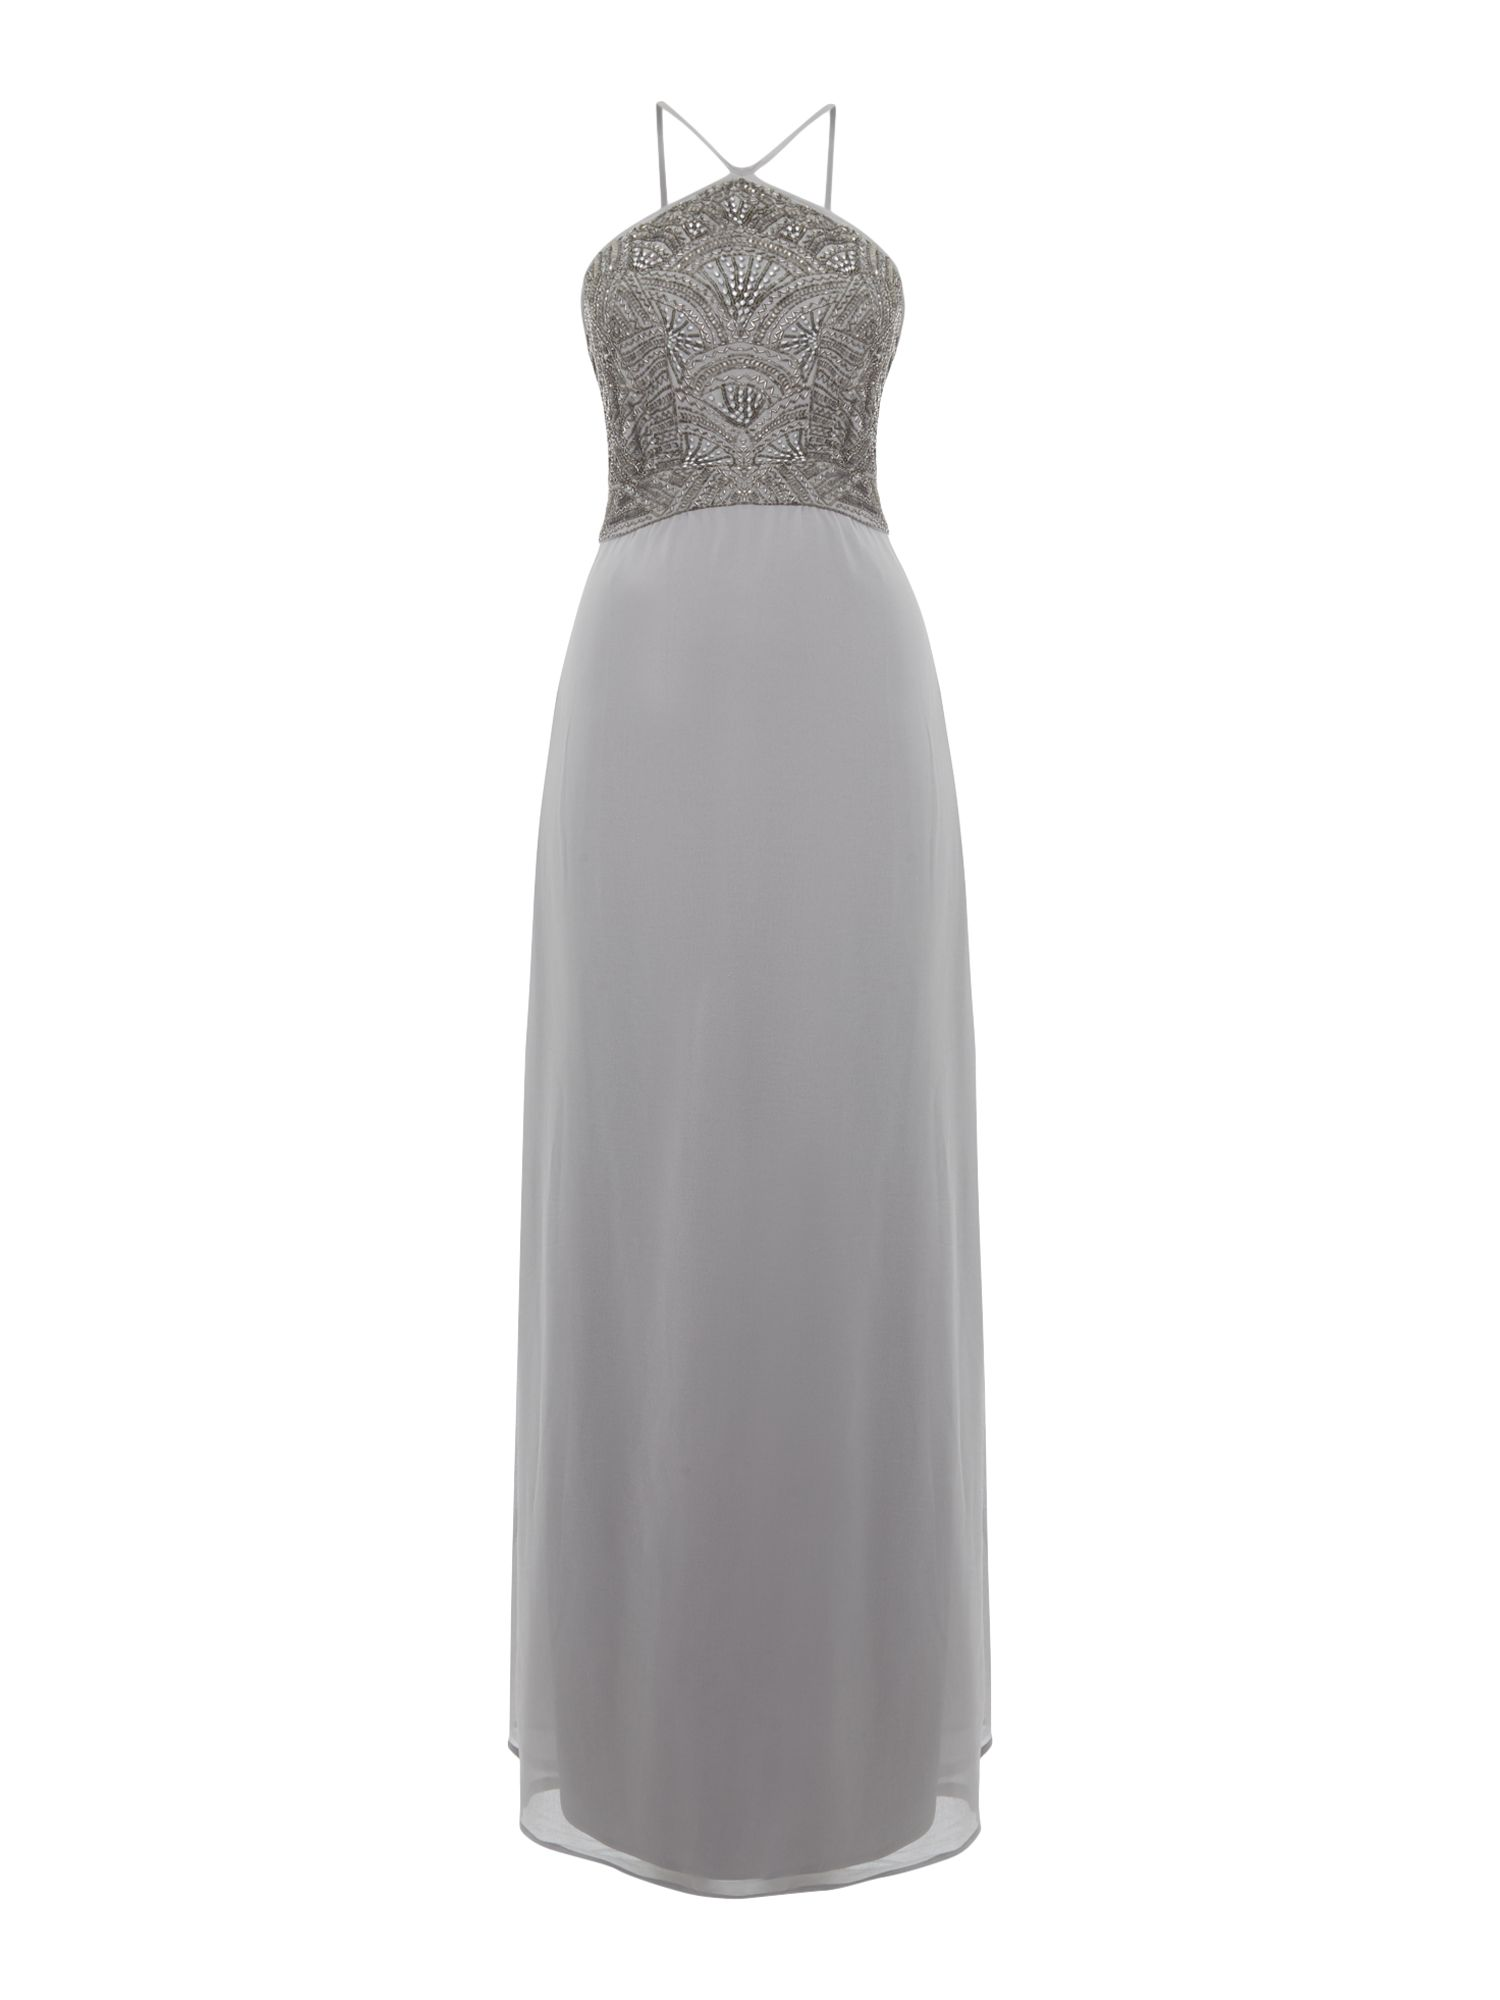 Lace and Beads Lace and Beads Sleeveless Halter Neck Sequin Maxi Dress, Grey